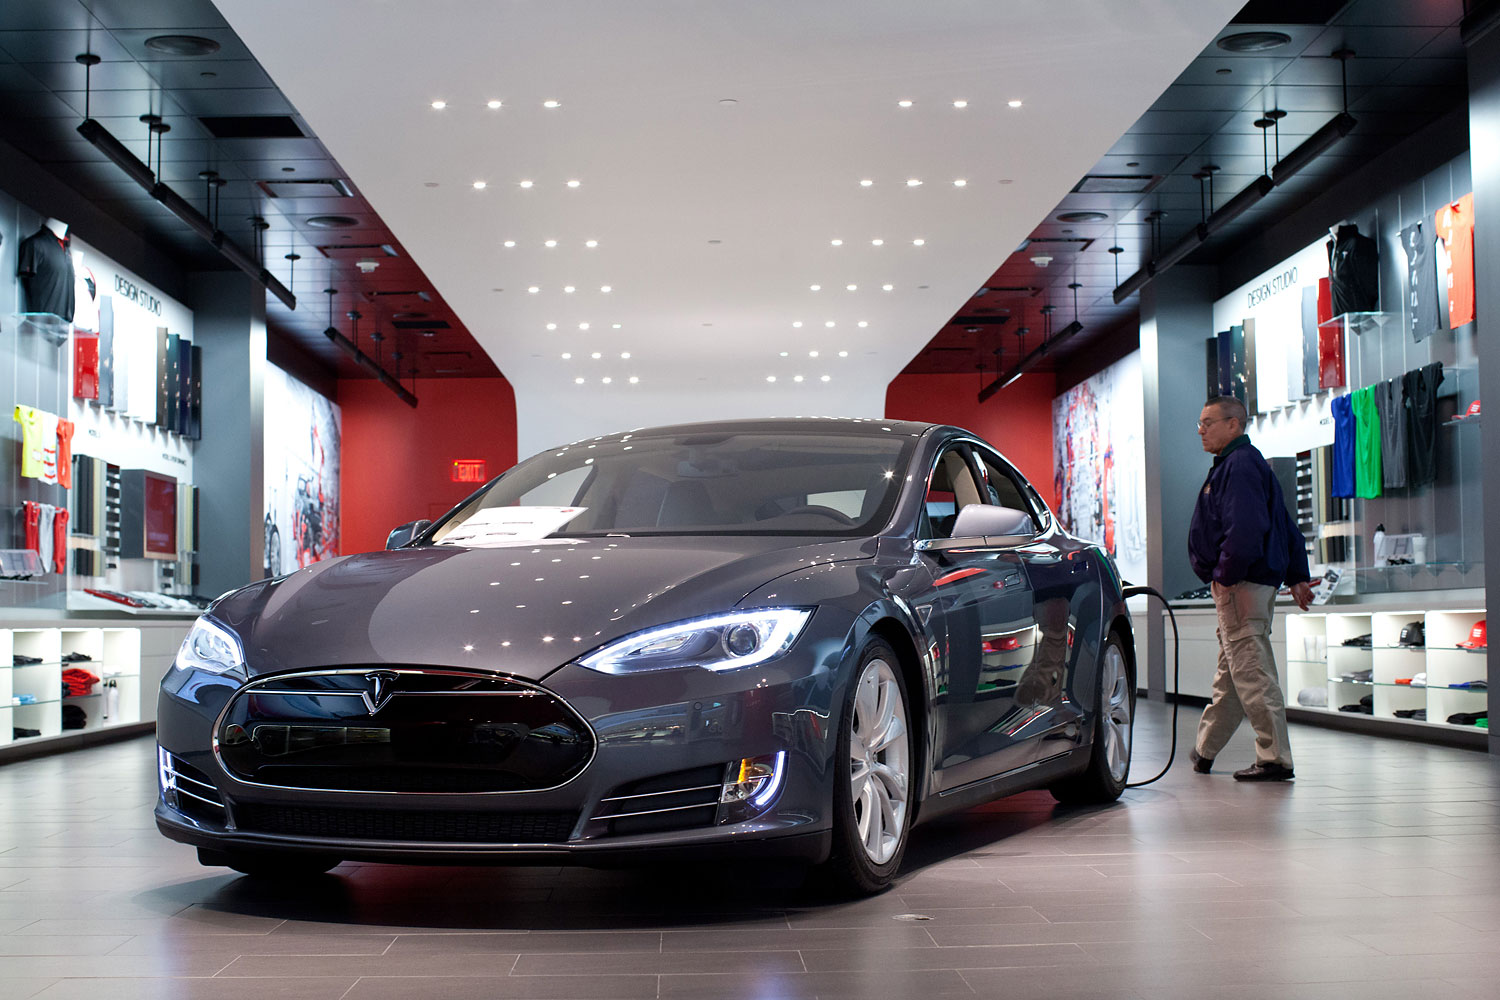 A Model S is displayed at the Tesla store in the Short Hills Mall in Short Hills, N.J., on March 12, 2014